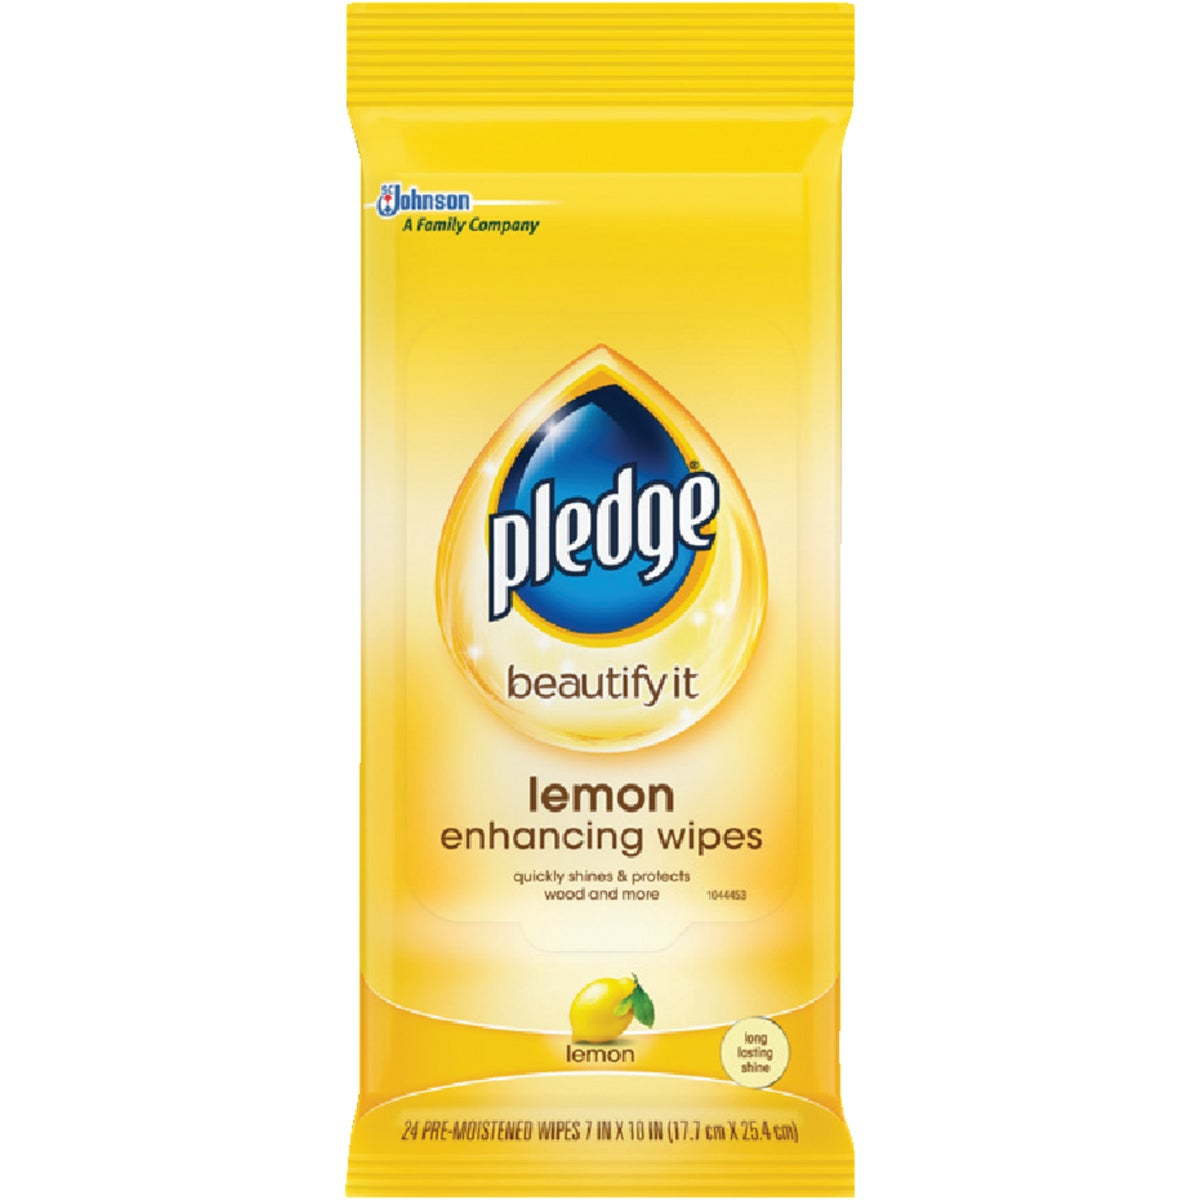 Pledge Lemon Furniture Polish Wipes, 72807